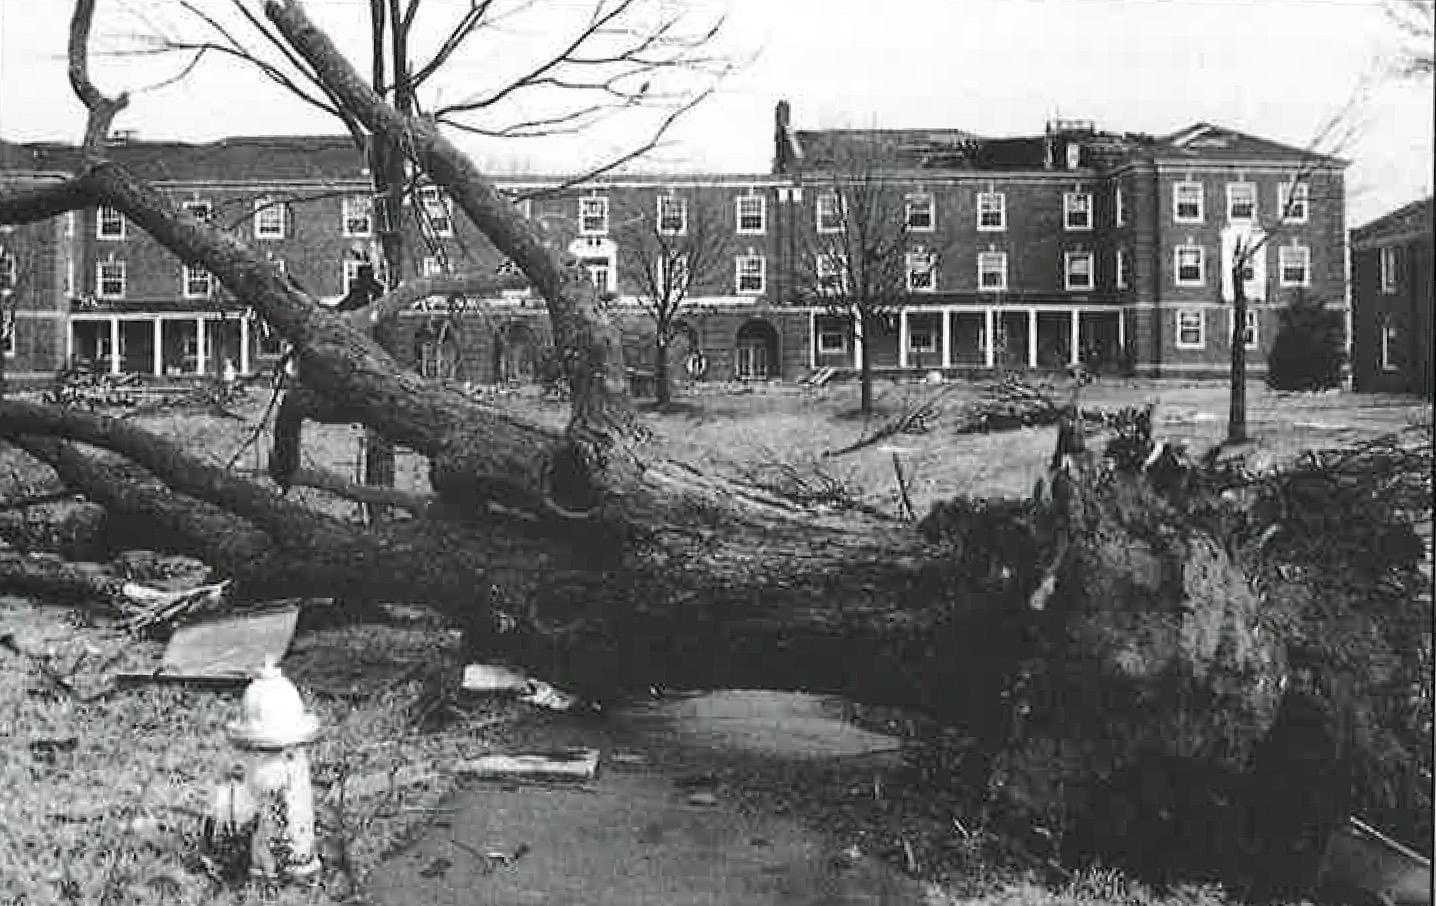 The Browning, Clement, Harned, pictured, Harvill and Archwood buildings were badly damaged during a Jan. 22, 1999, tornado that ripped through Clarksville.